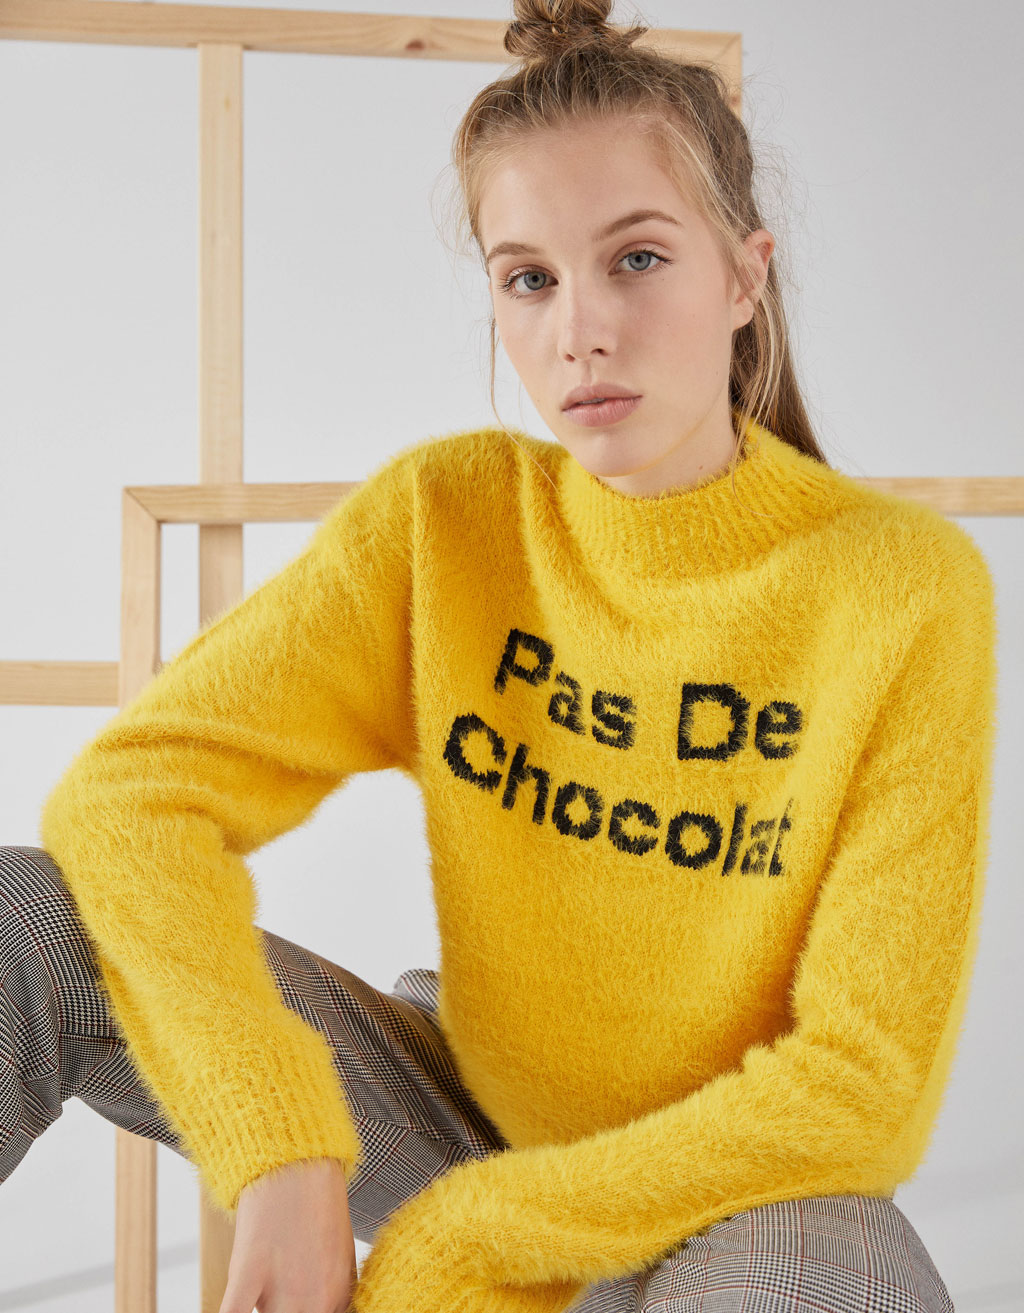 Fuzzy sweater with slogan